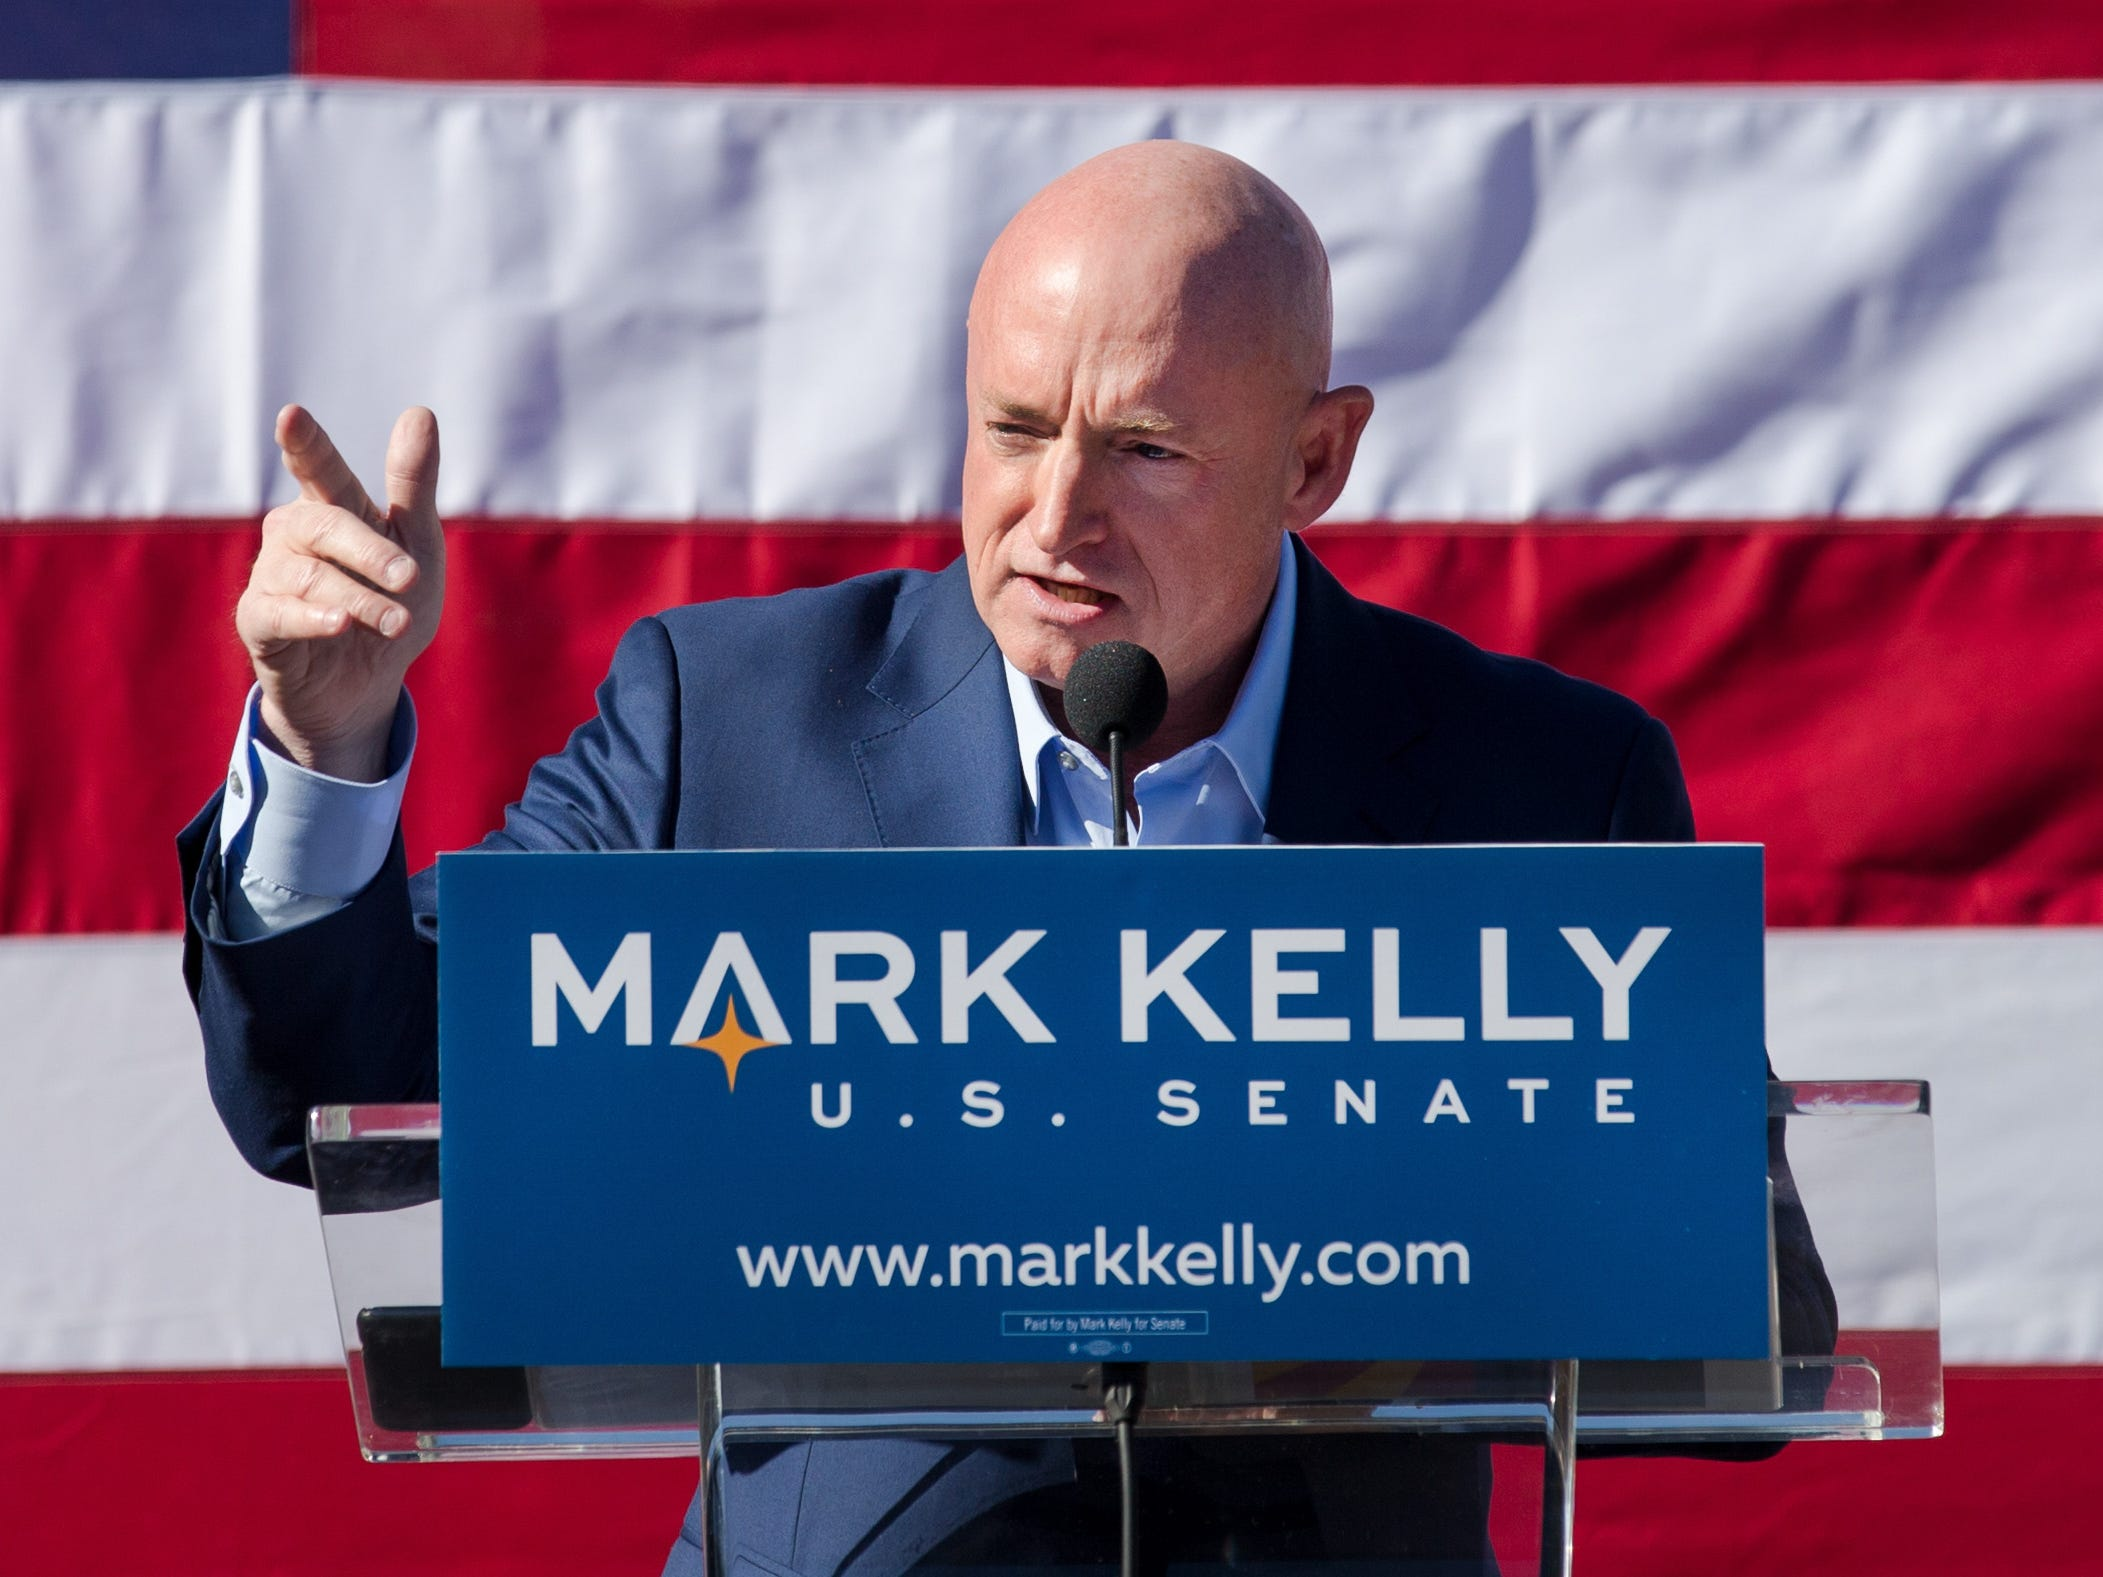 Mark Kelly speaks during his U.S. Senate campaign kickoff event at Hotel Congress, Feb. 23, 2019, in Tucson, Ariz. The former astronaut is the husband of former congresswoman Gabrielle Giffords.